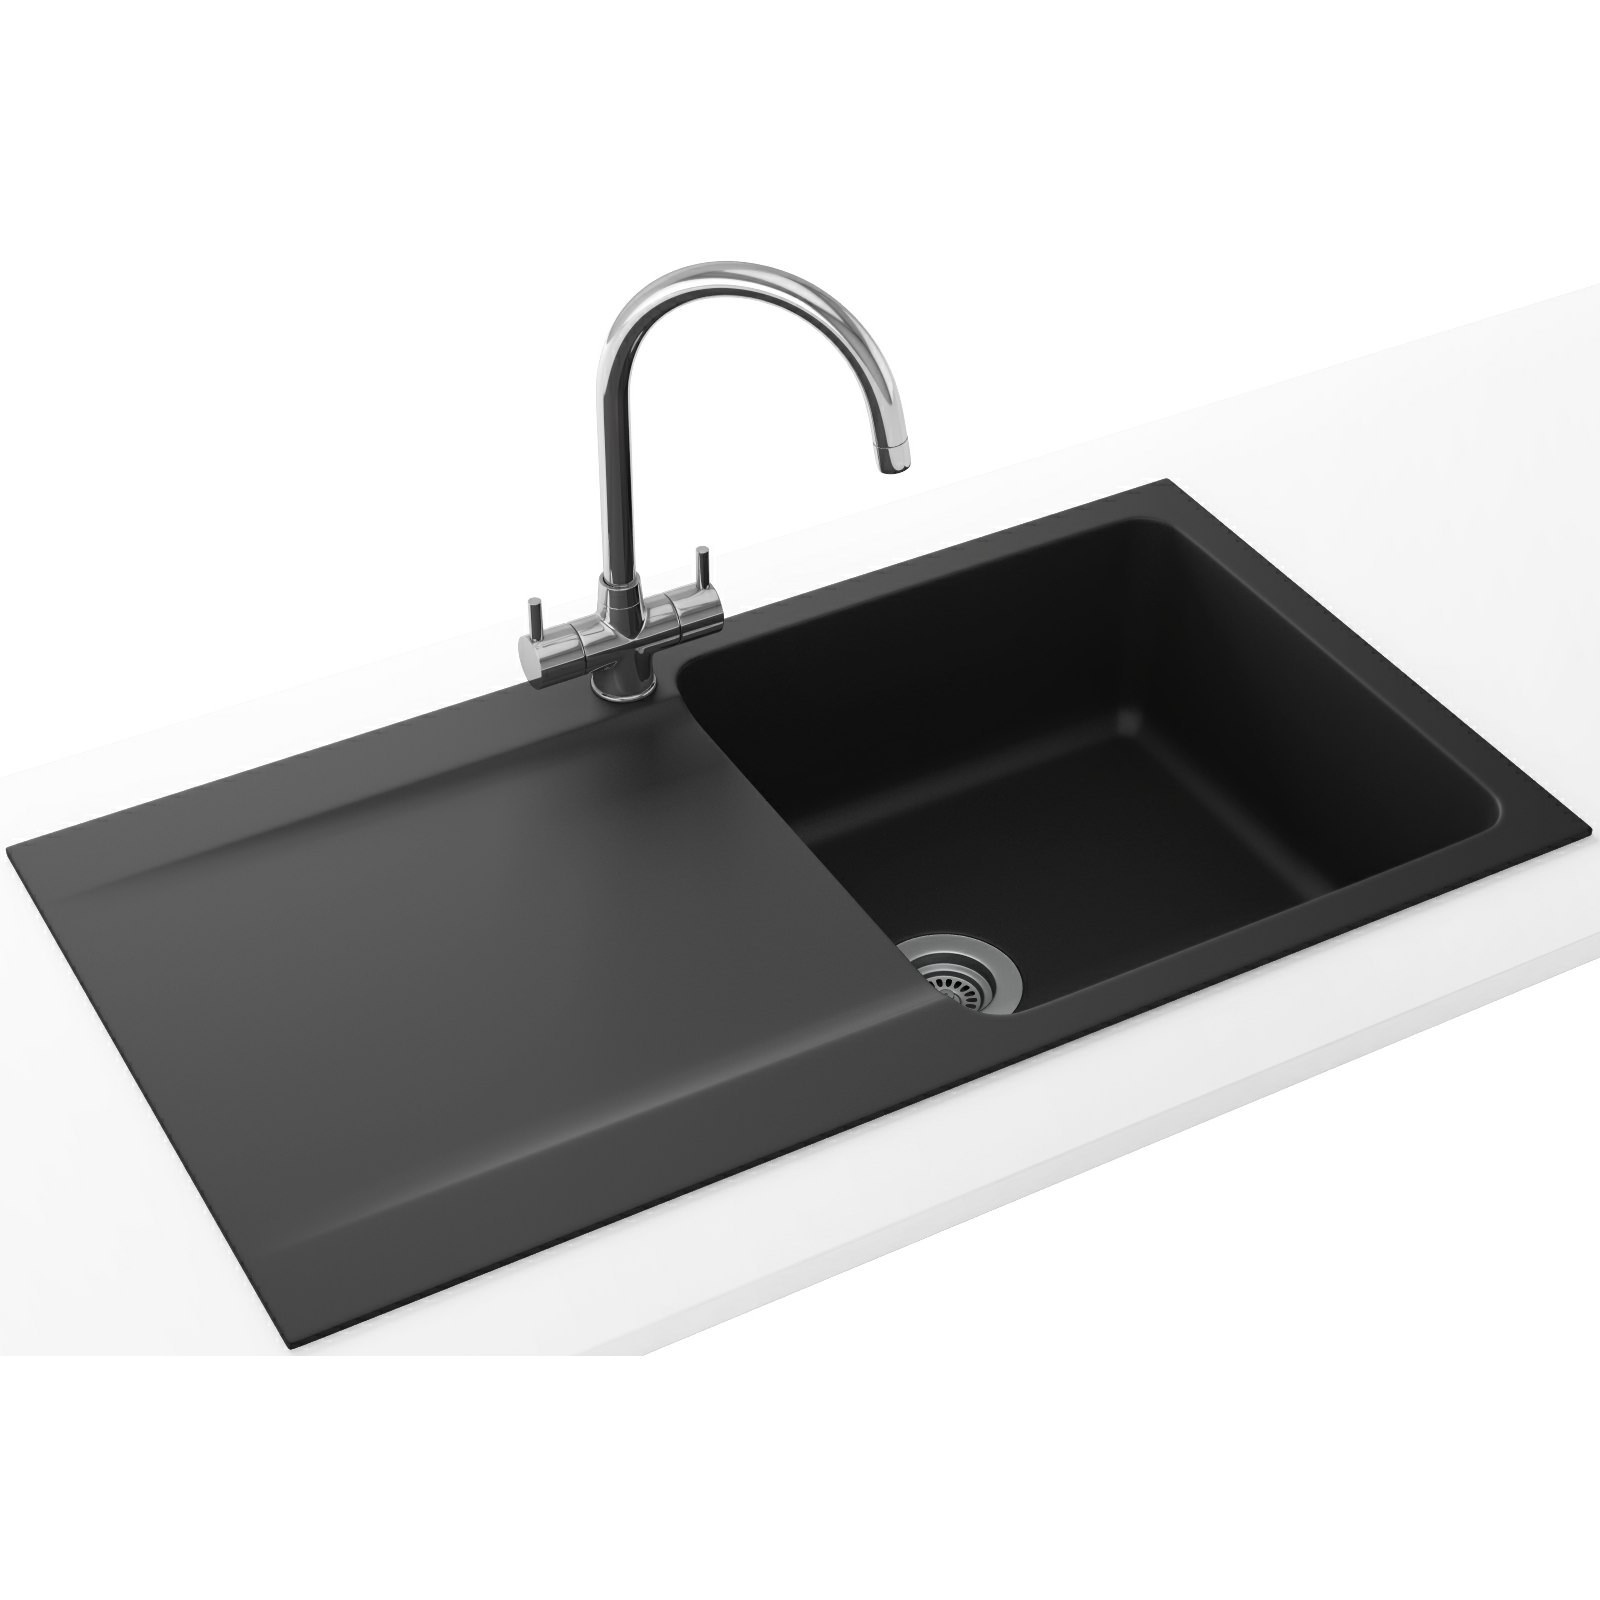 Franke Black Kitchen Sink: Franke Orion Propack OID 611-94 Tectonite Carbon Black